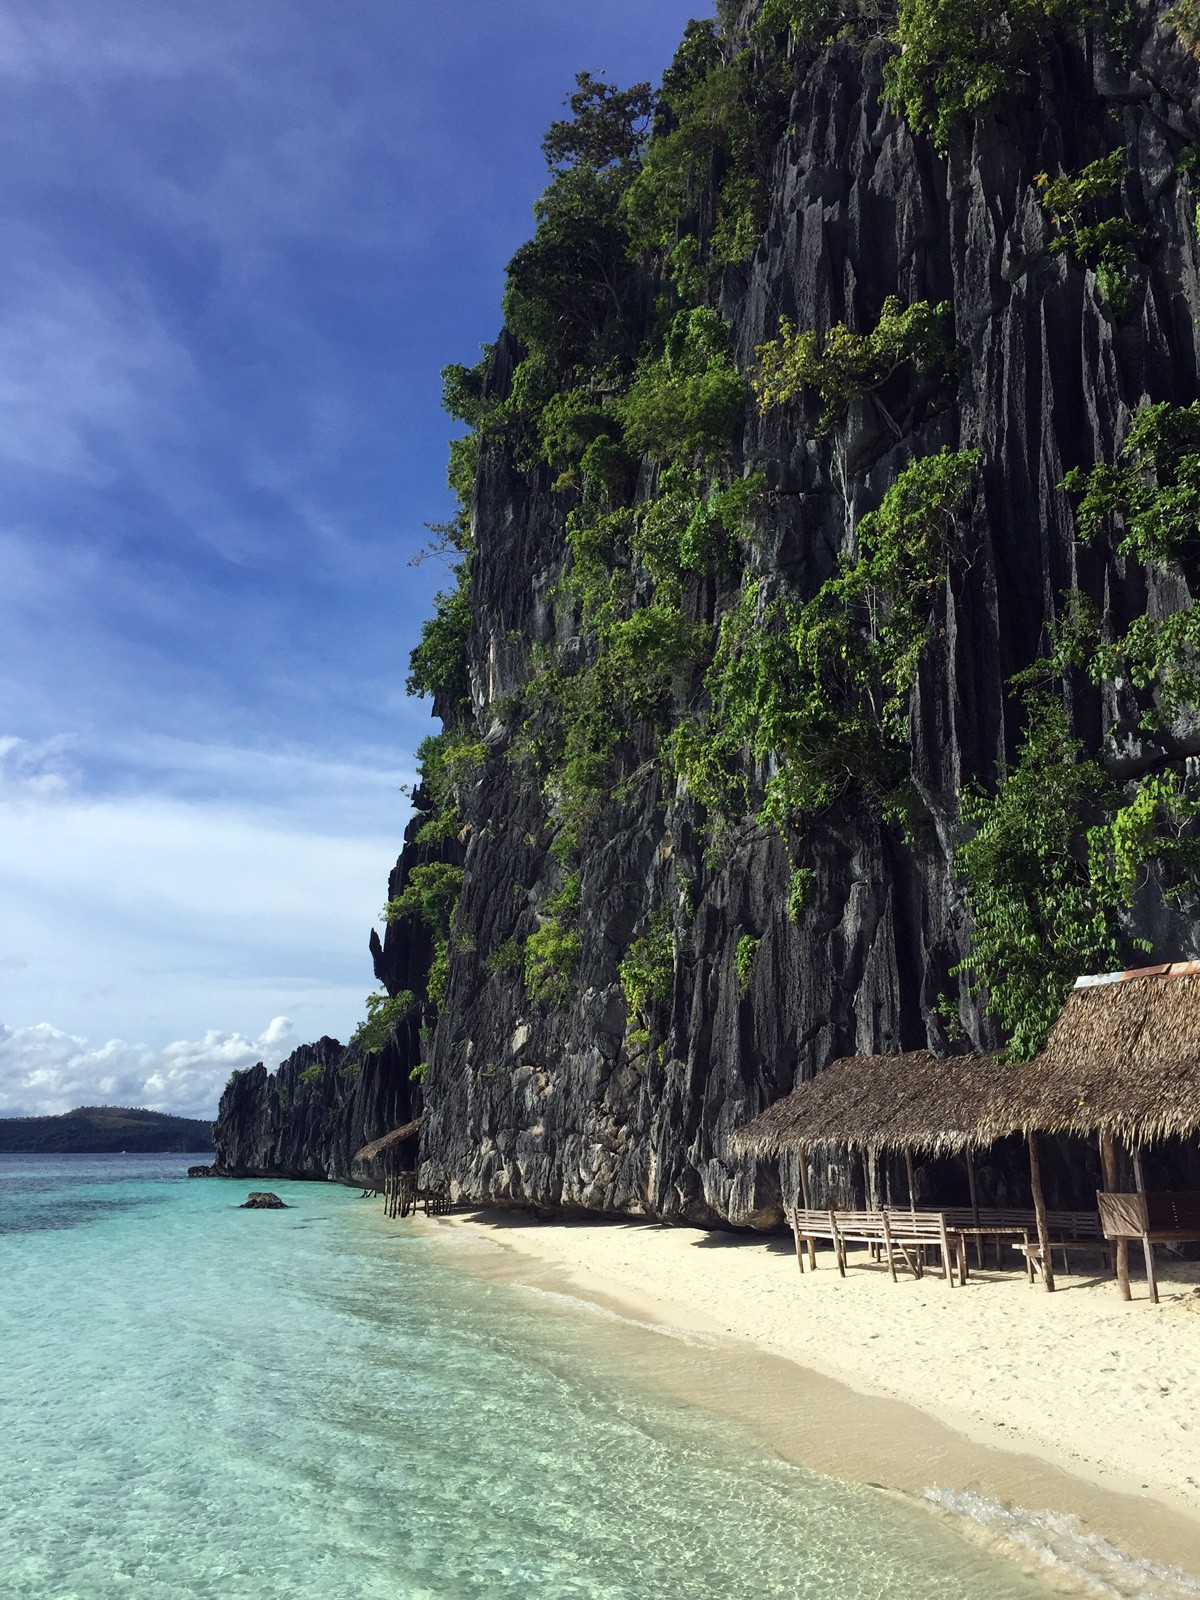 Perfect place - Banul beach, Coron, Palawan